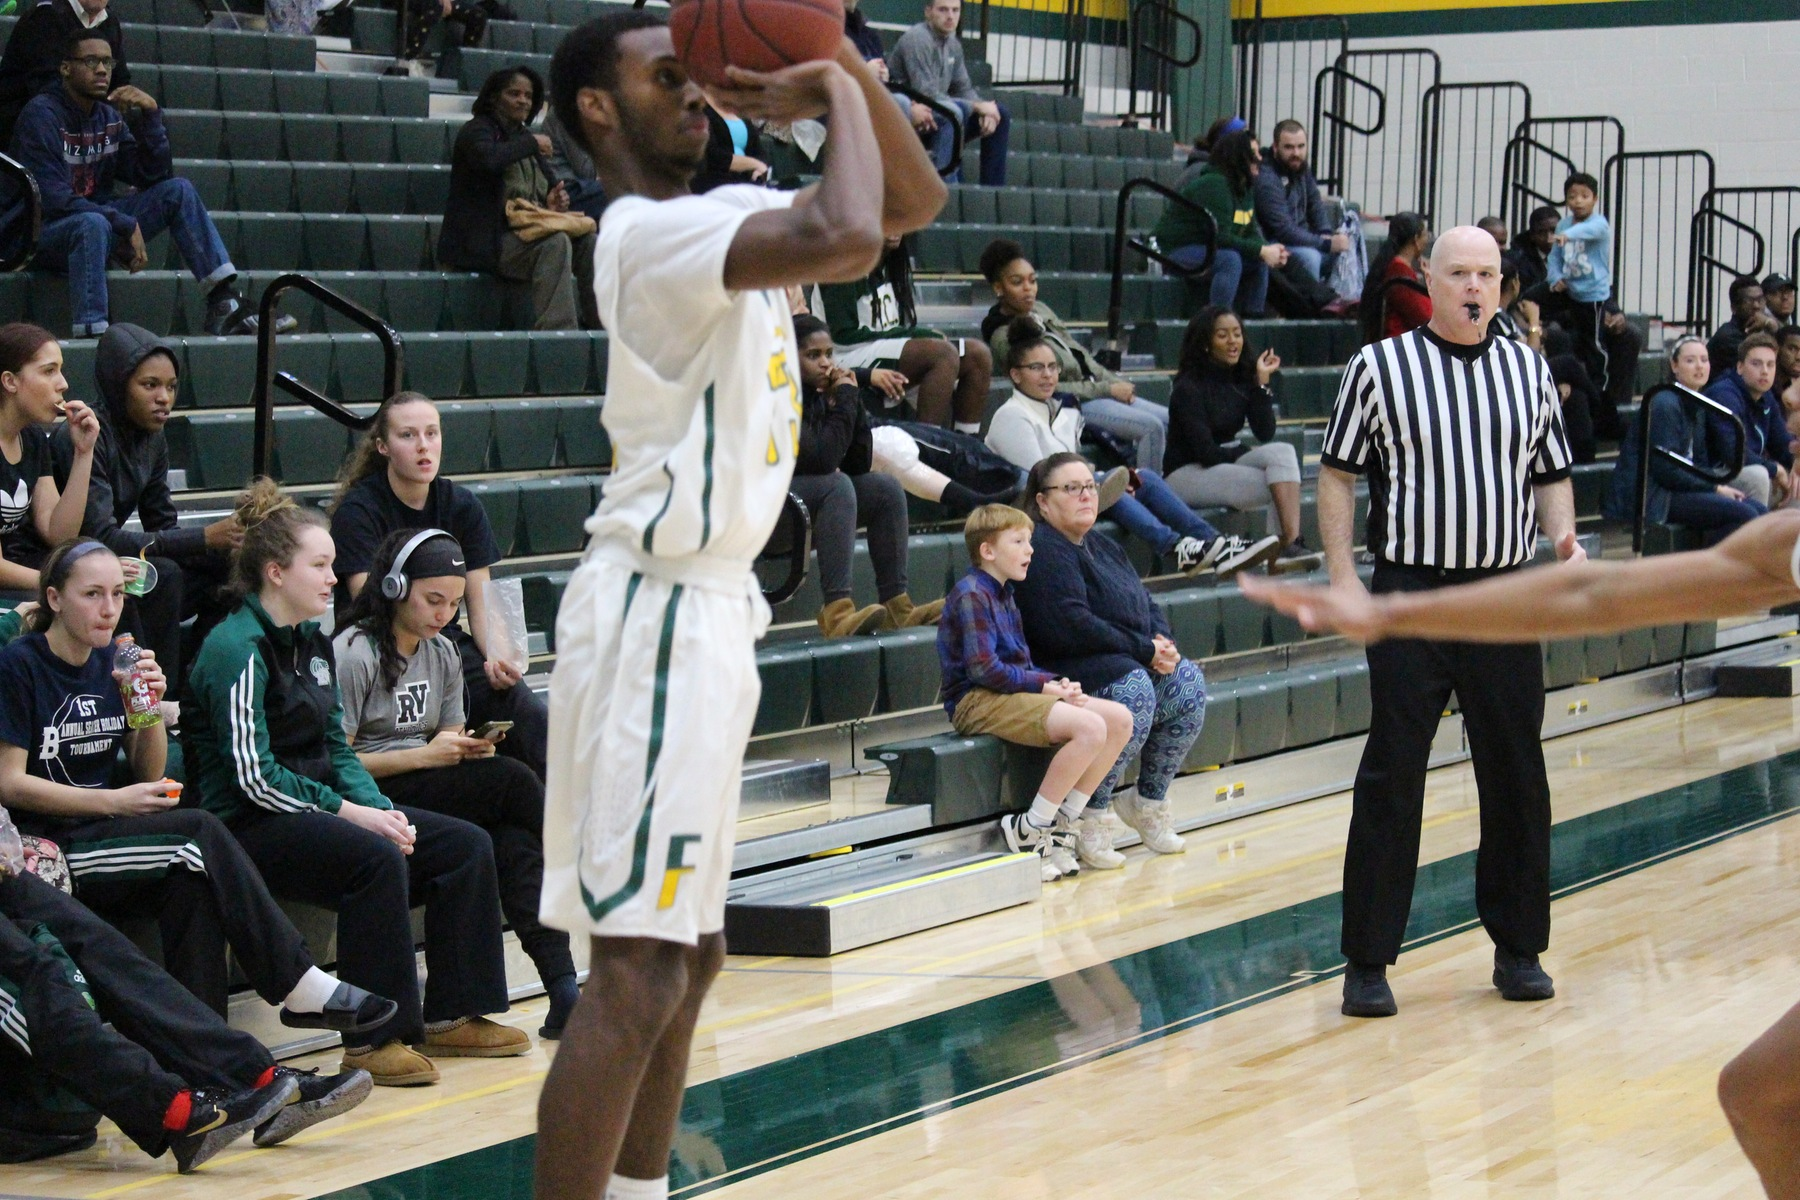 Cougars Close Out Conference Play With Win Over Lakers